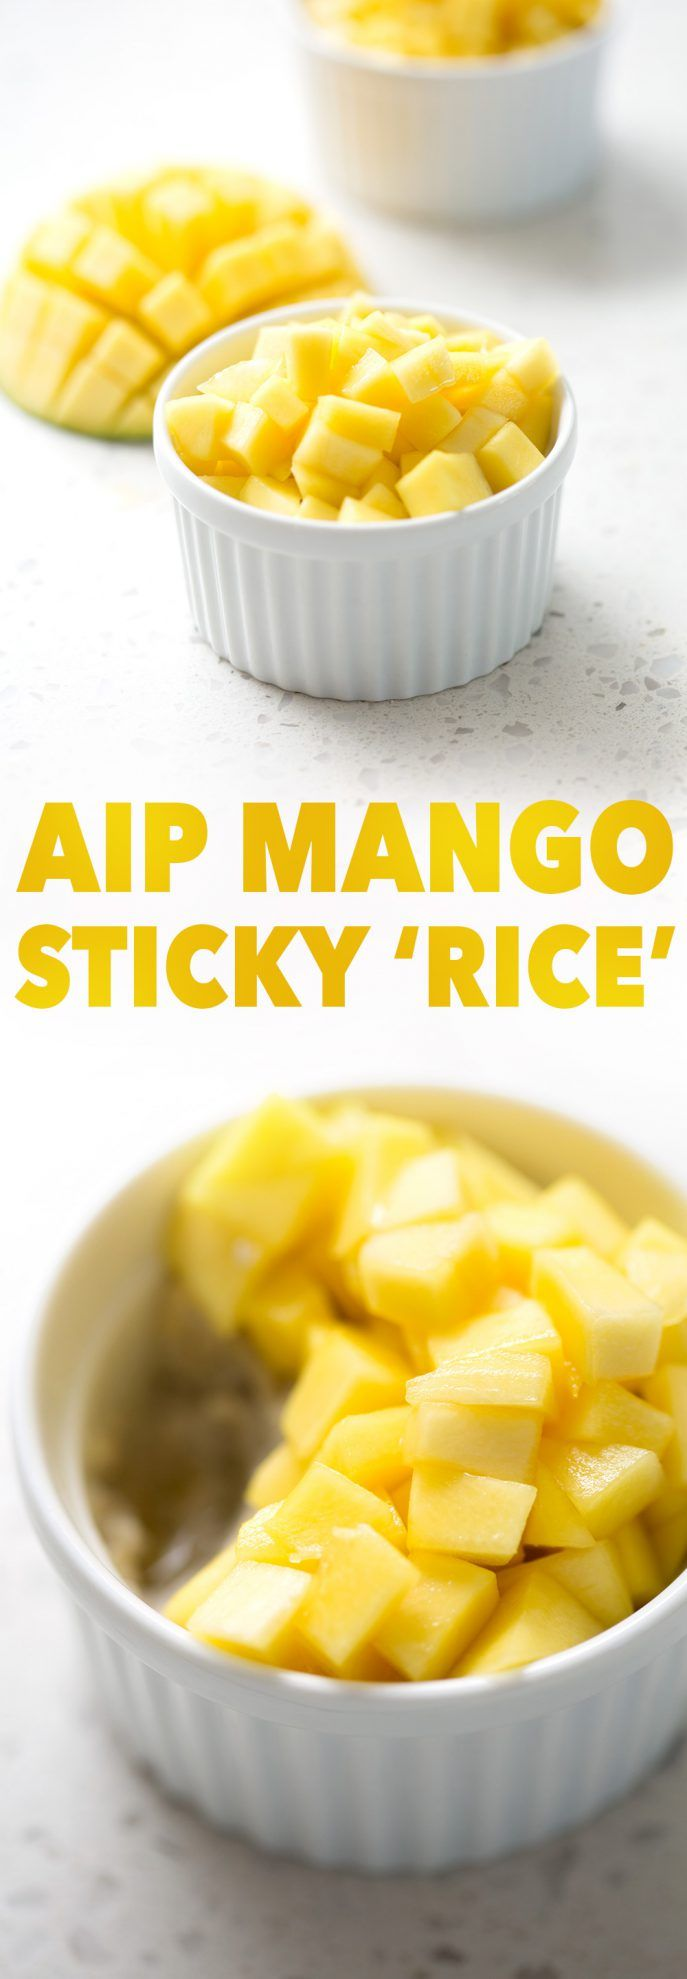 AIP Mango Sticky 'Rice'